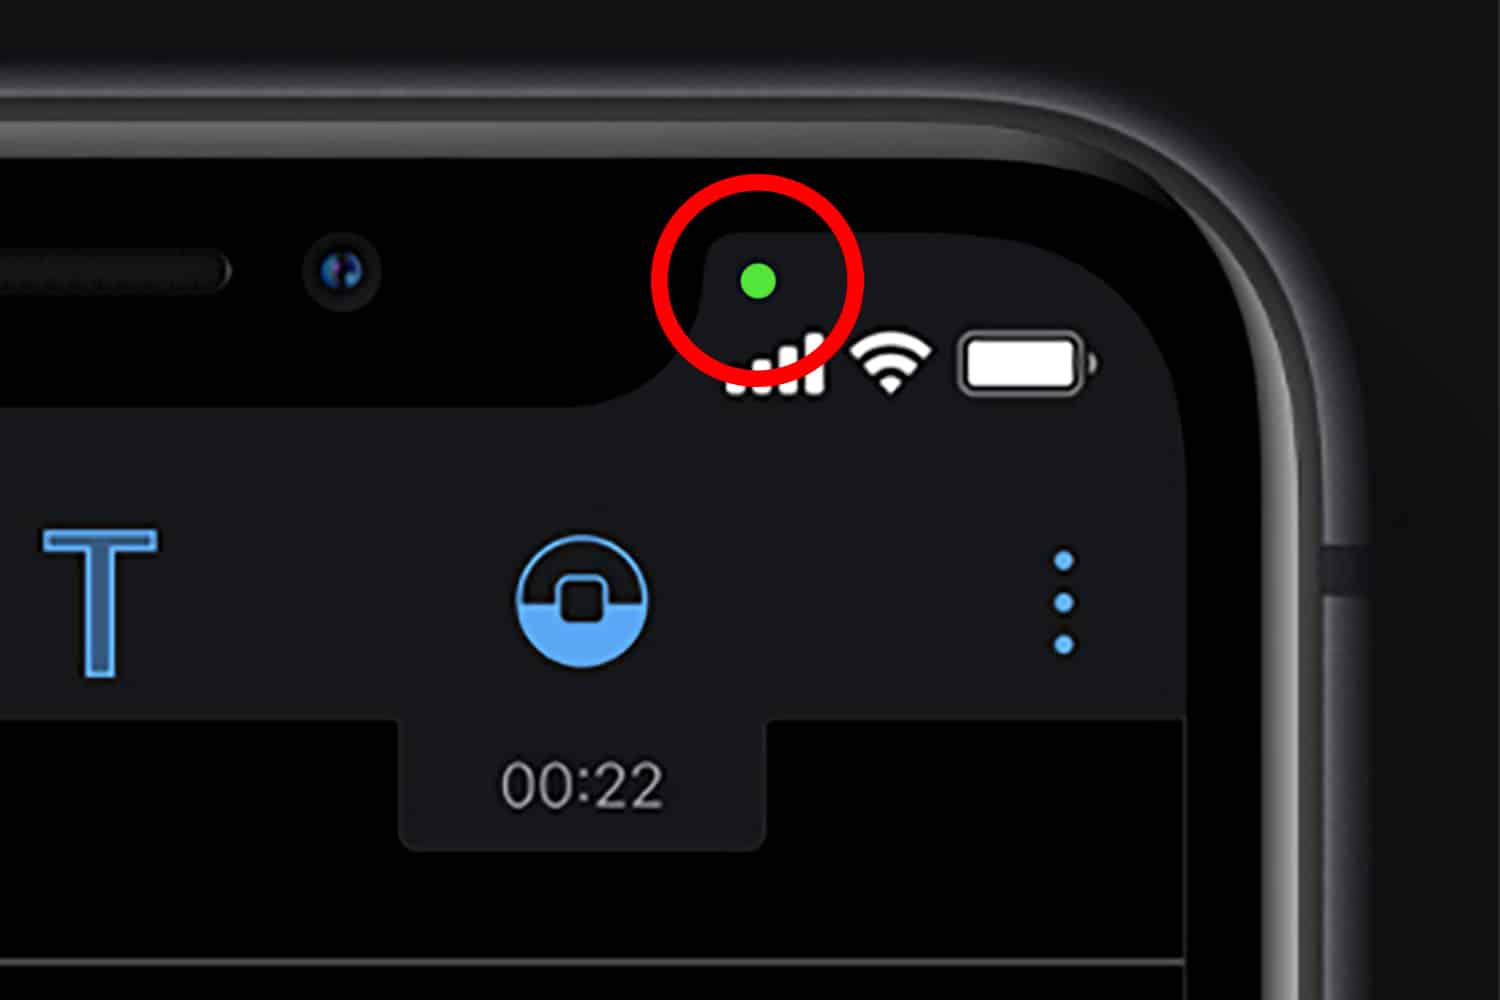 Green dot means an iOS app is currently using the camera.